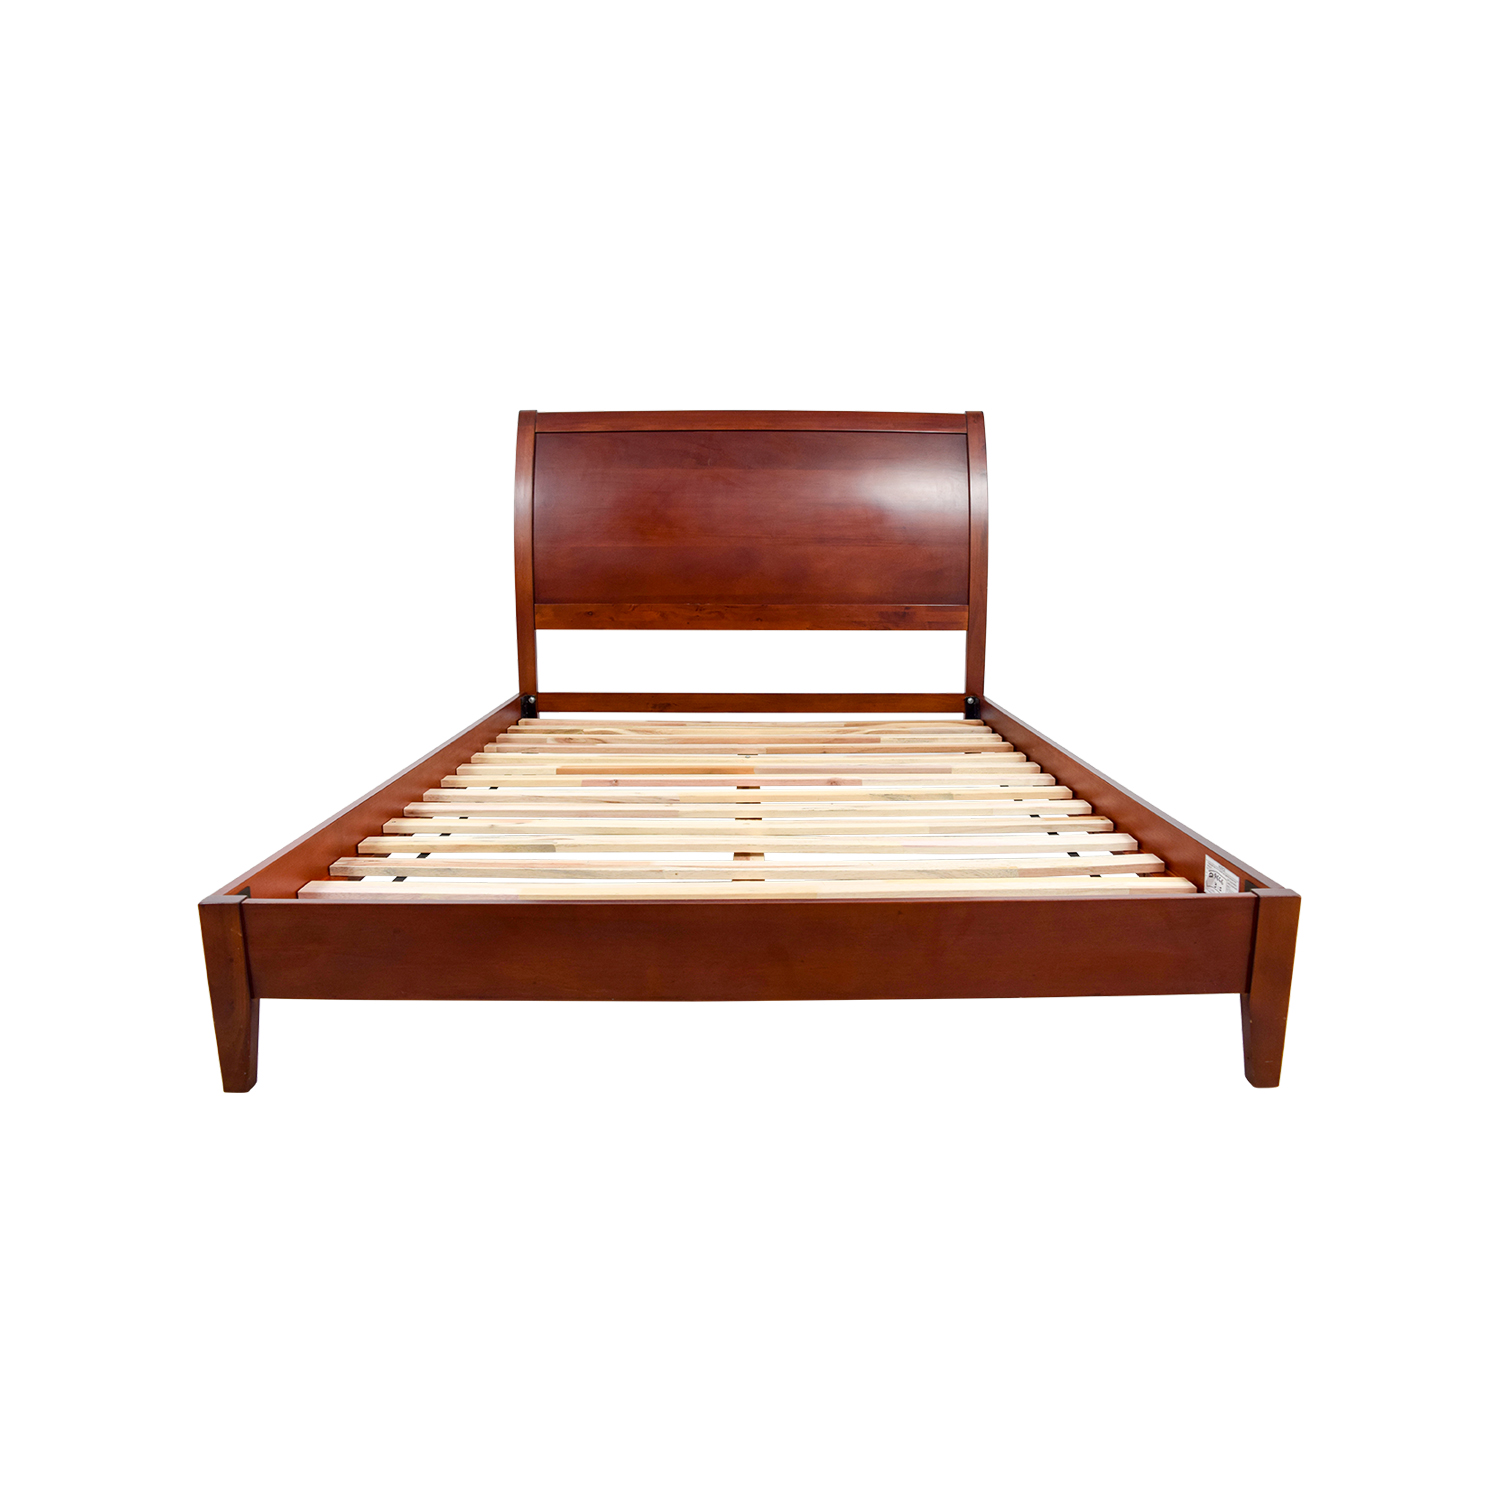 70% OFF - Sleepy\'s Sleepy\'s Queen Wooden Bed Frame / Beds